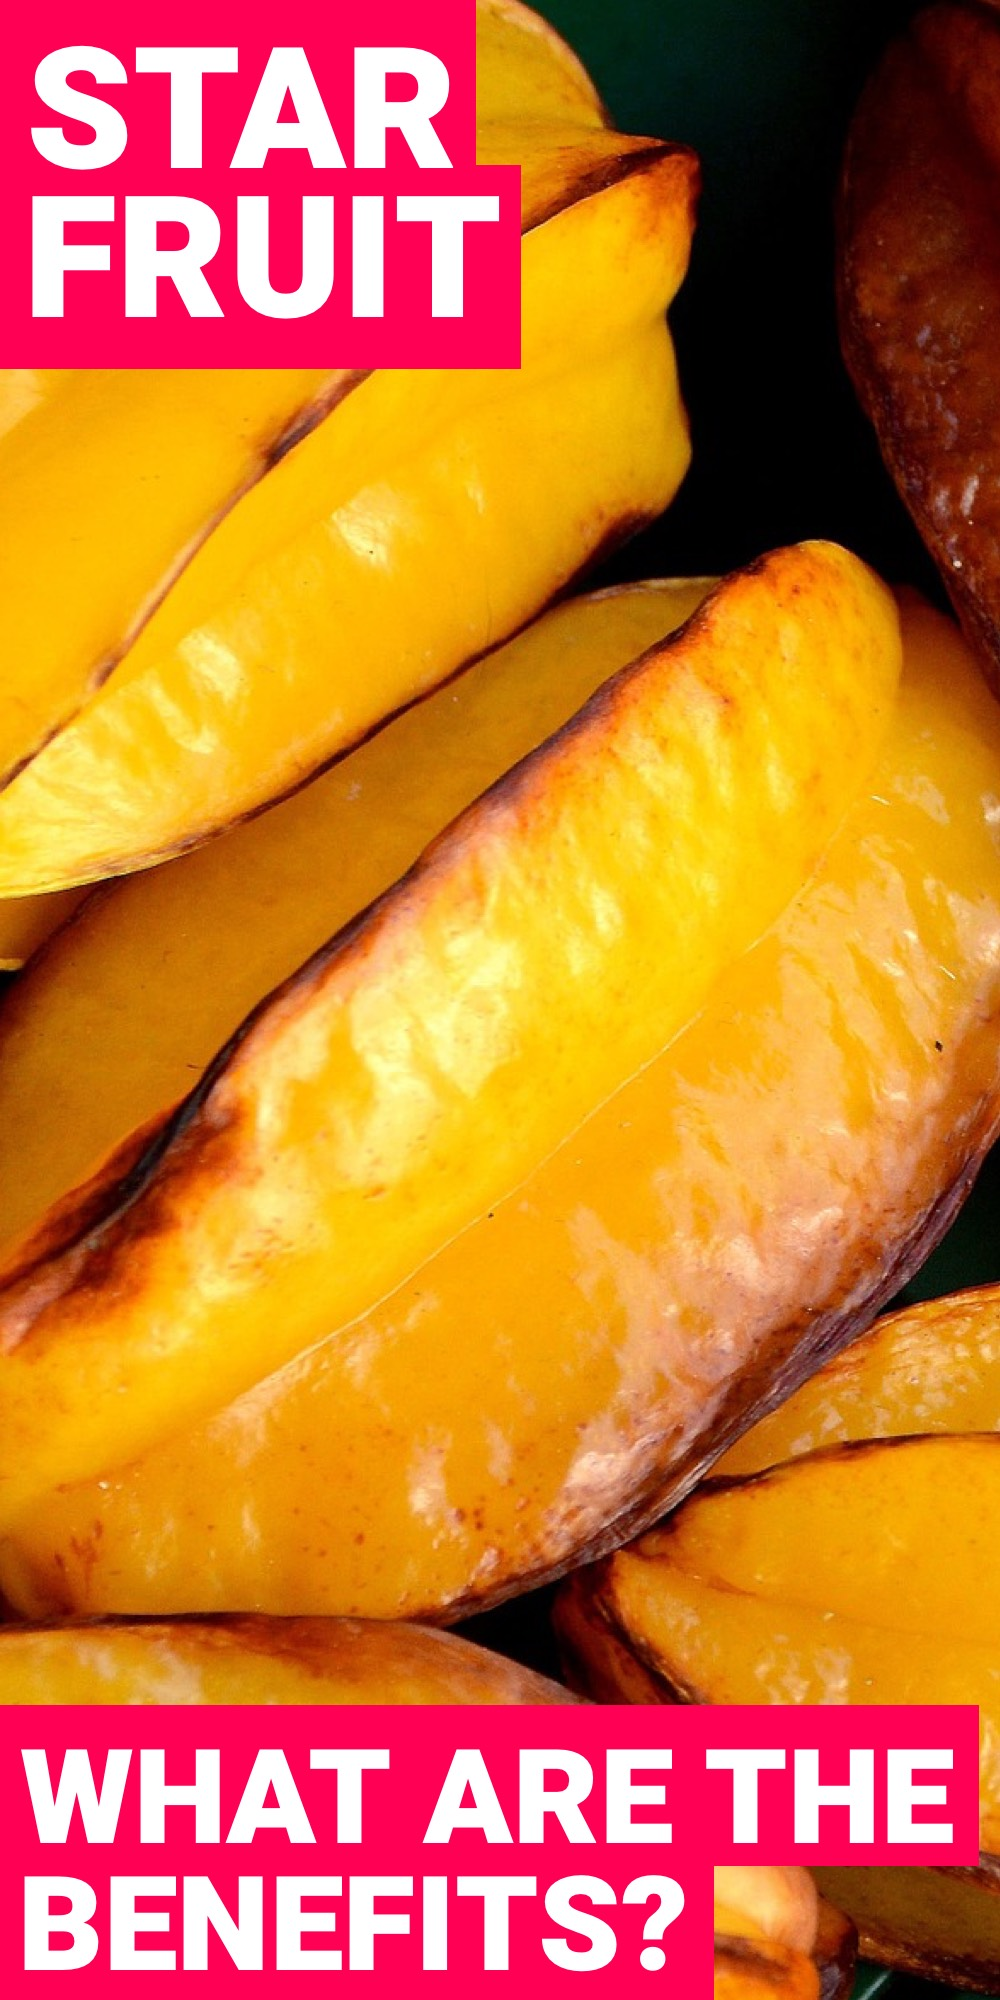 When it comes to exotic fruit, star fruit is definitely up there with the best. Find out any star fruit benefits you want to know about here.